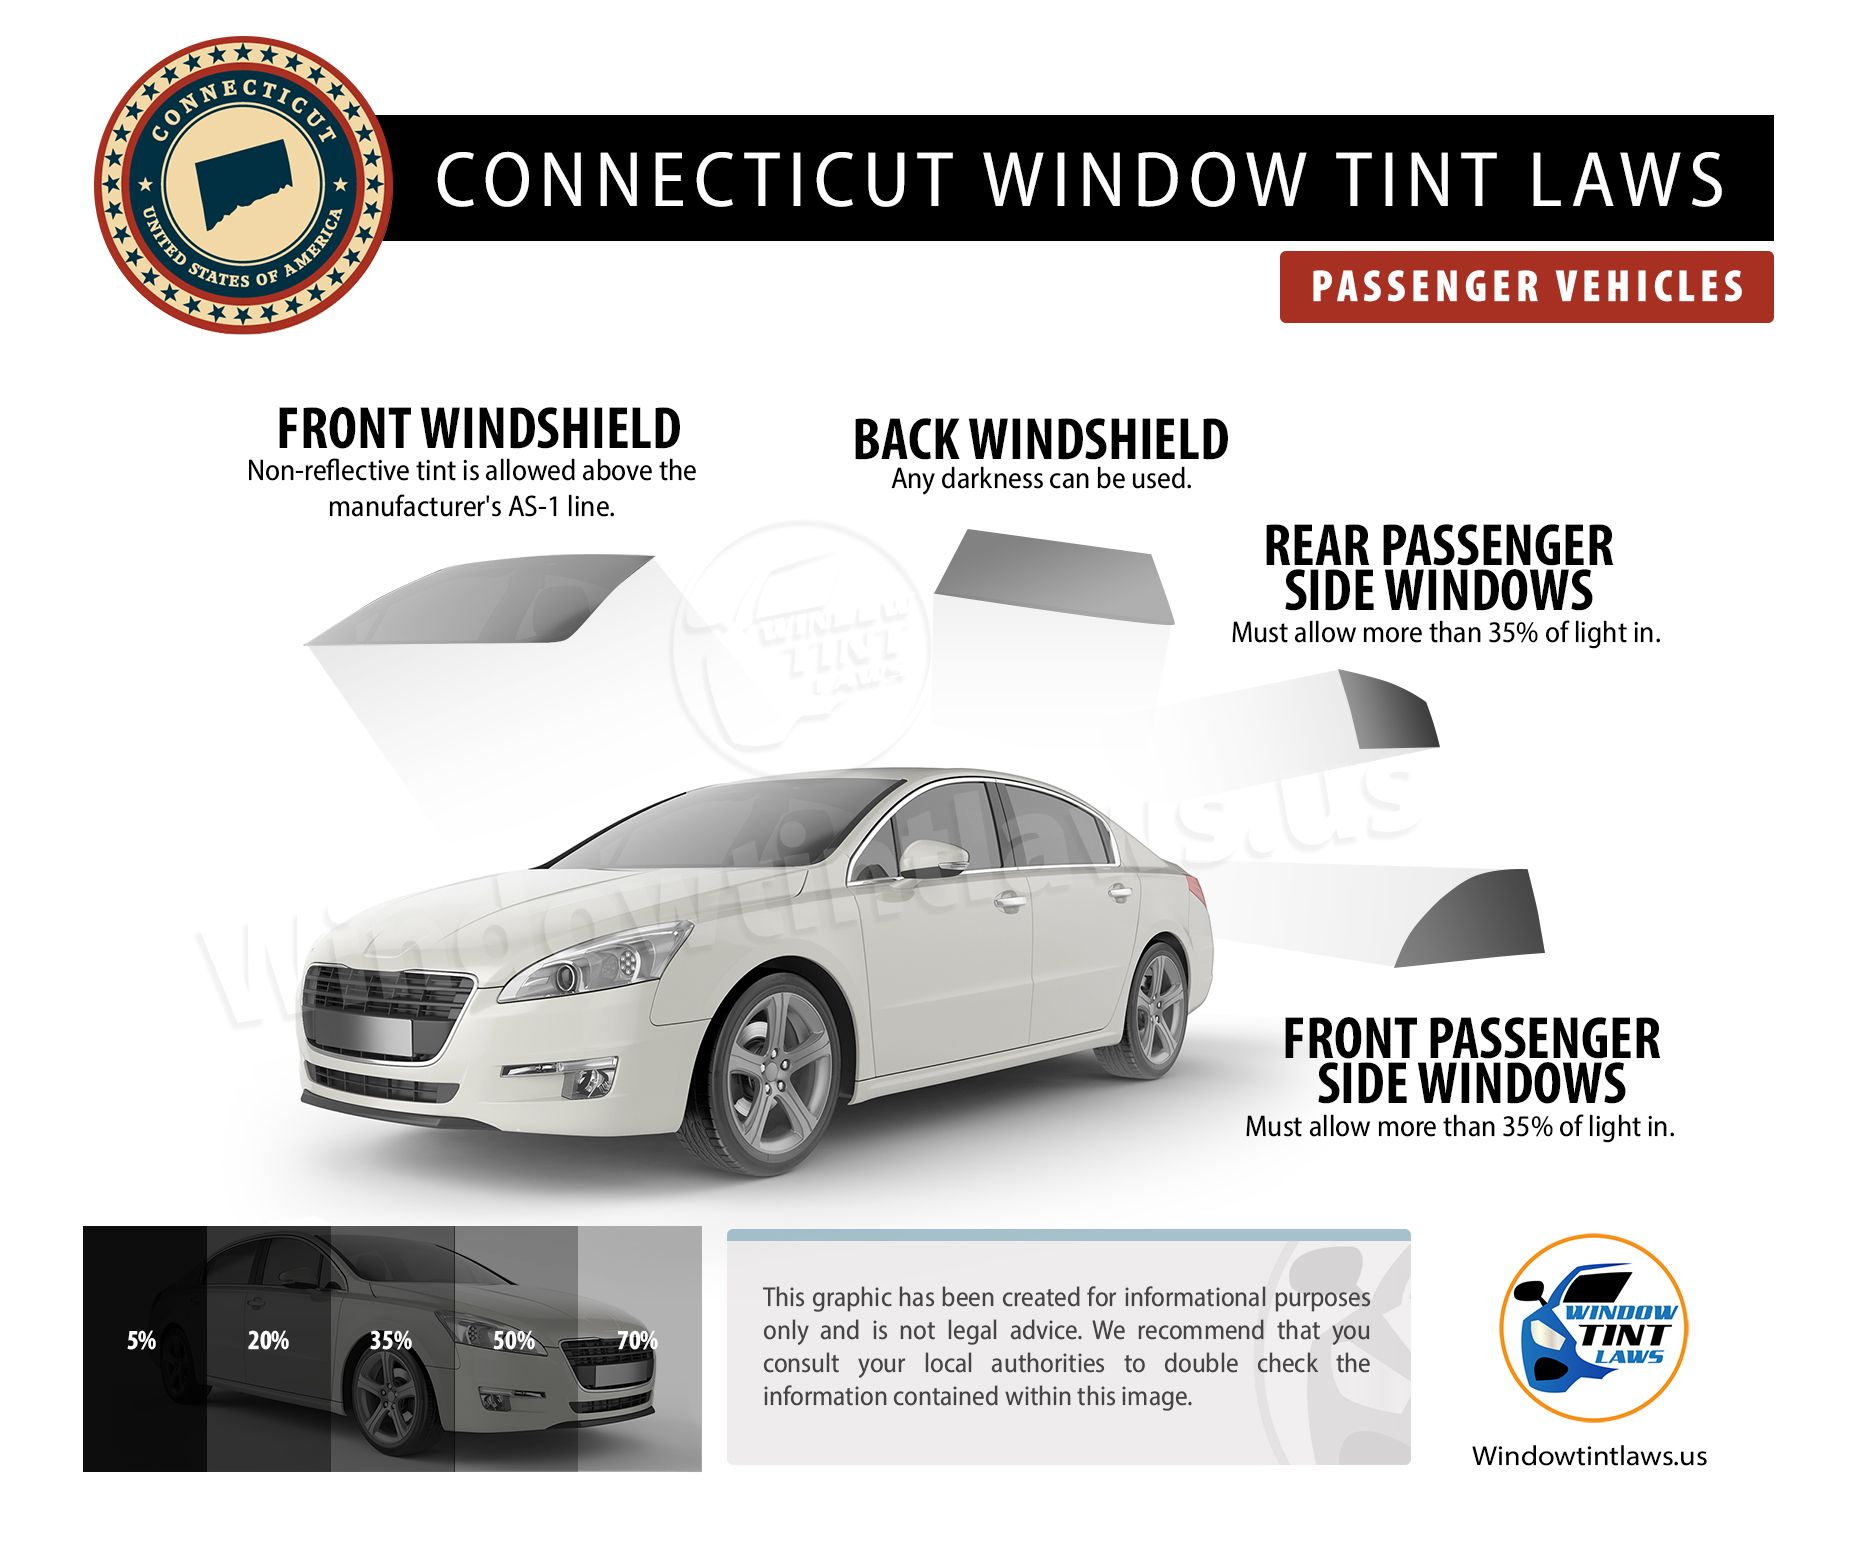 Connecticut Window Tint Law 2020 In 2020 Tinted Windows Tints Passenger Vehicle